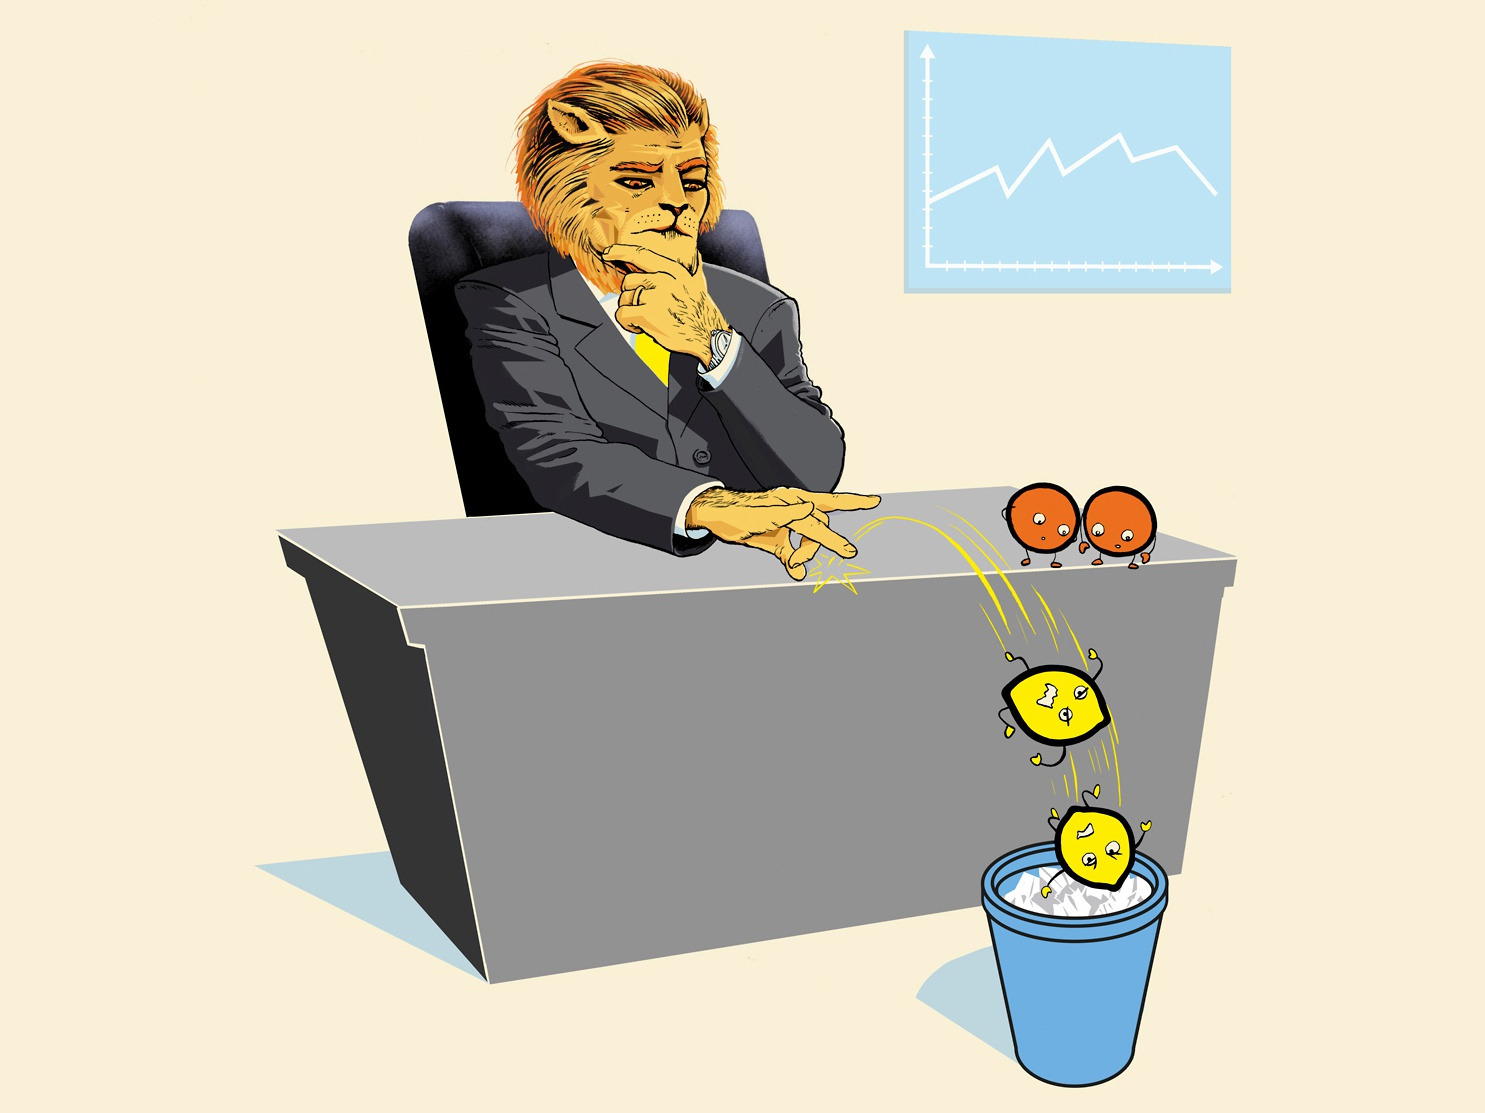 Types Of Leaders ceo leading business leaders lion boss leader editorial character illustration